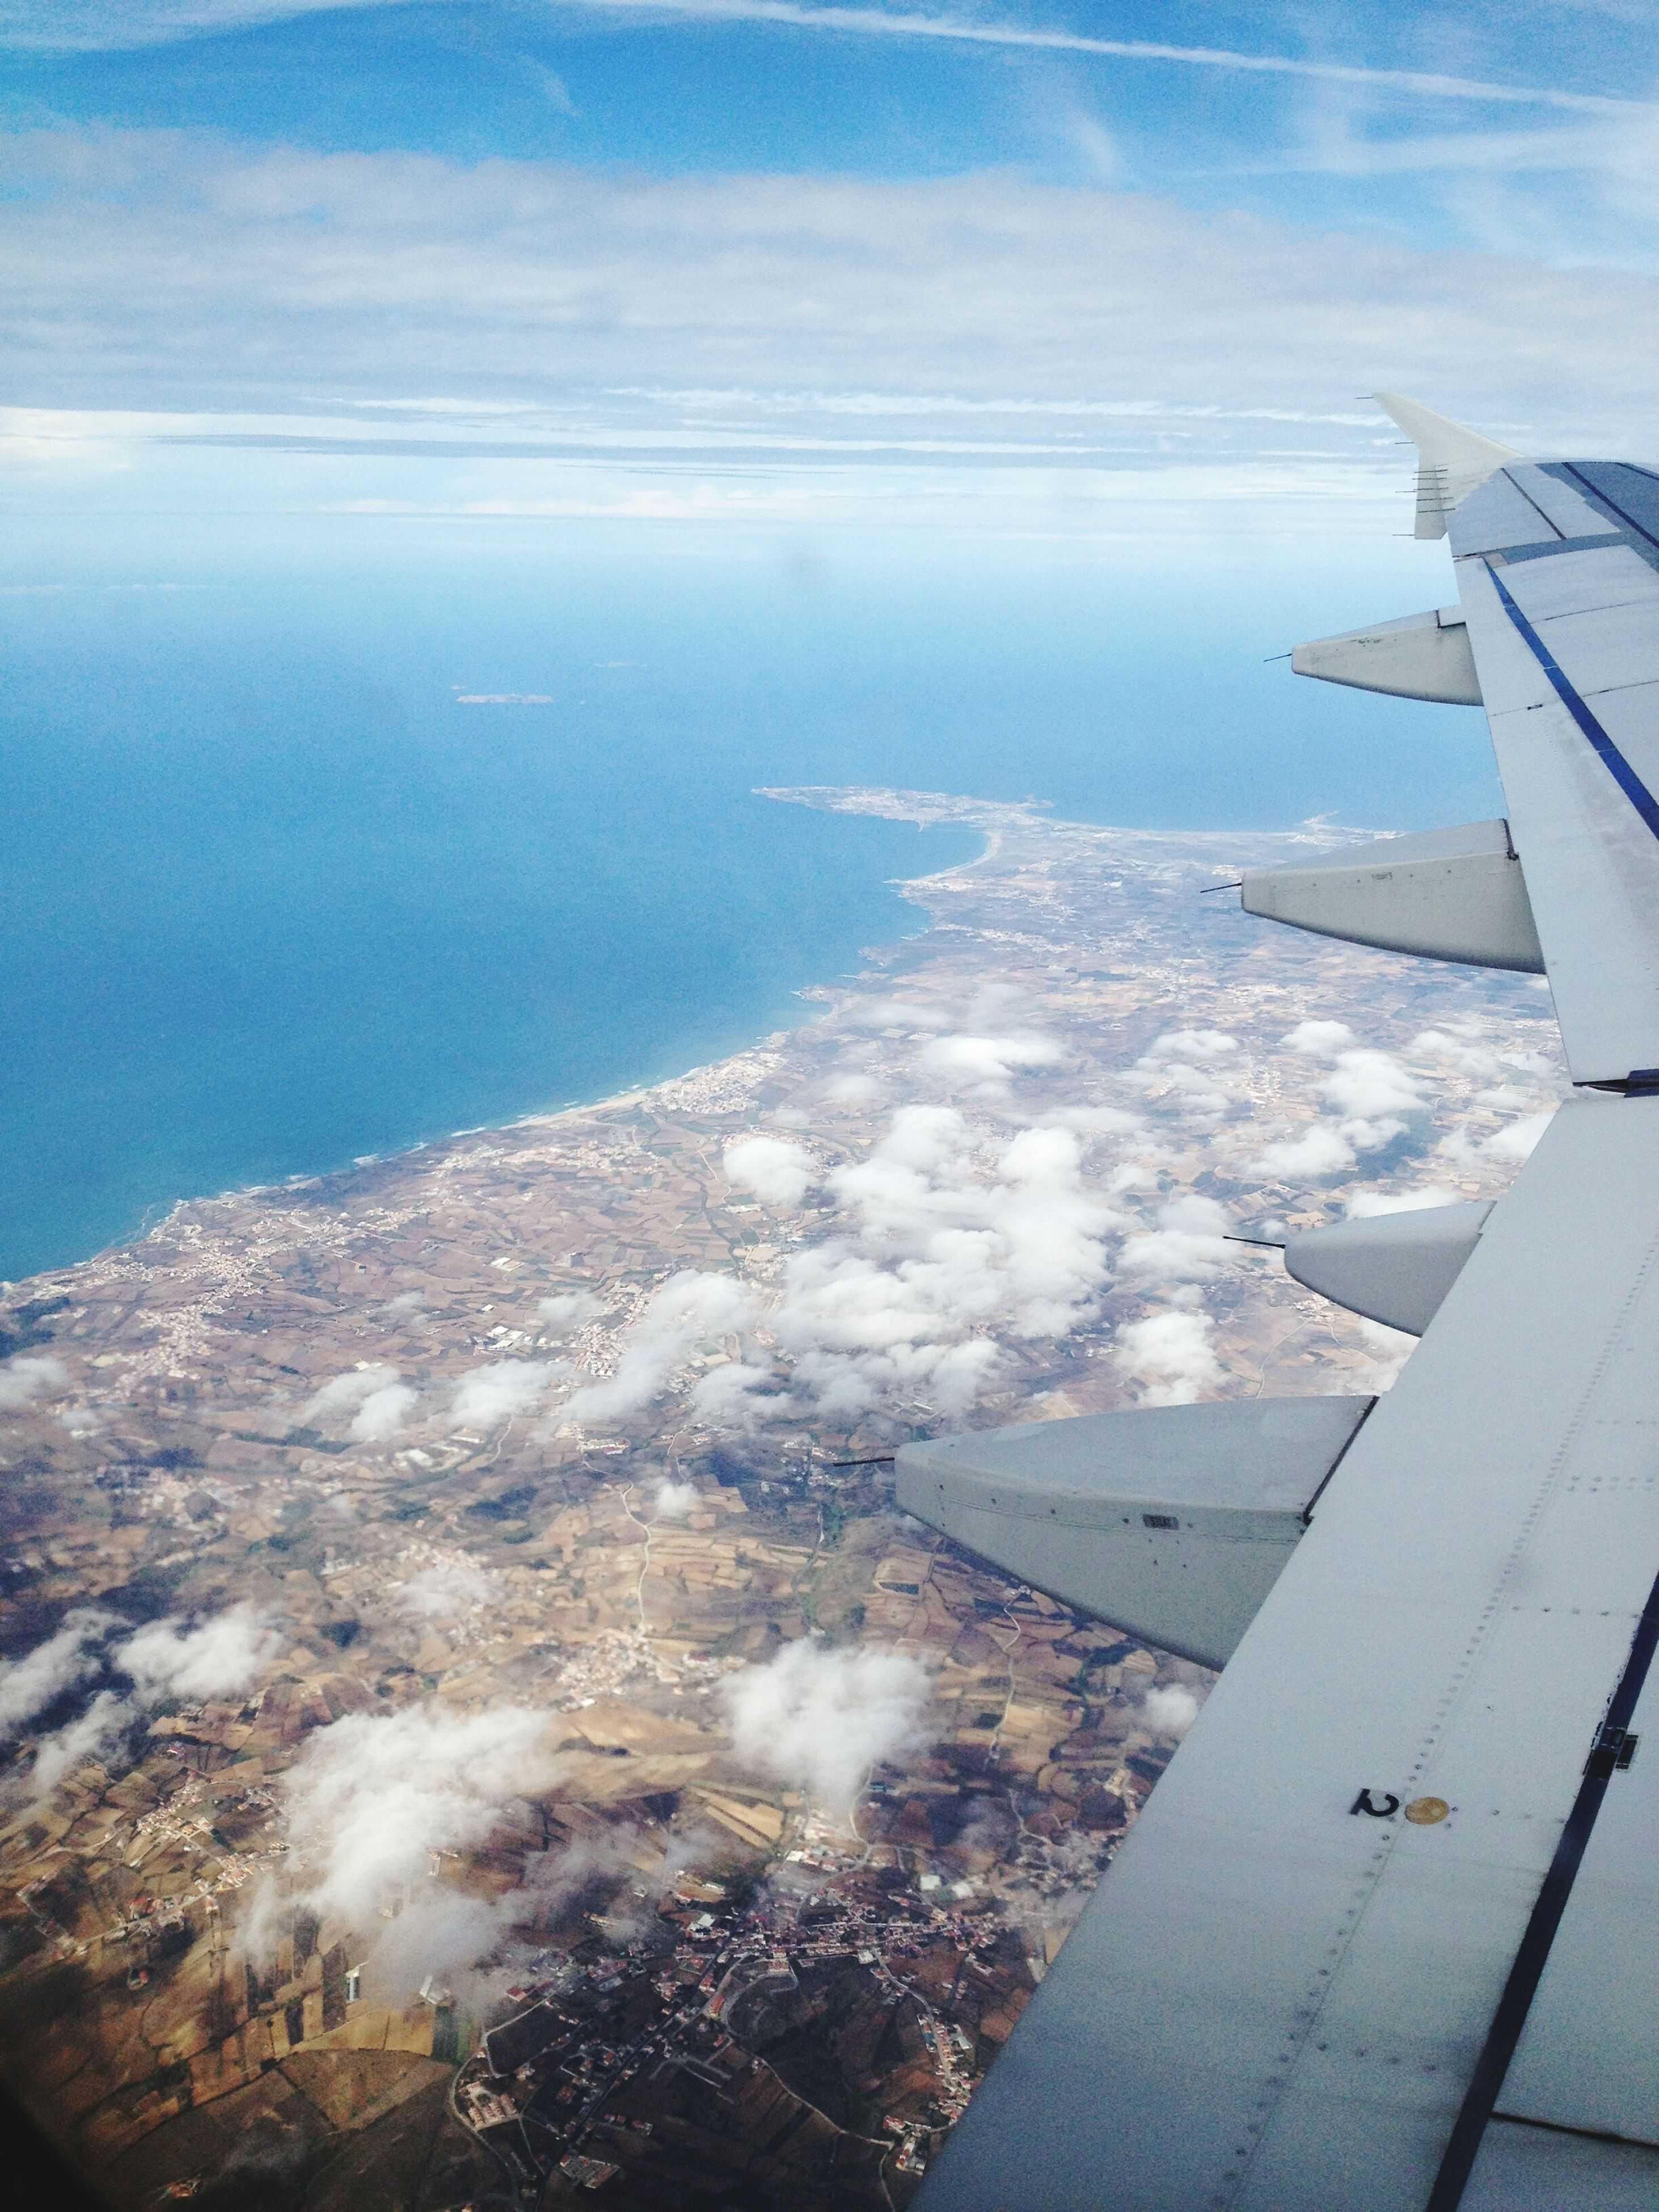 aerial view, aircraft wing, airplane, air vehicle, water, scenics, flying, transportation, beauty in nature, sky, mountain, nature, landscape, high angle view, mode of transport, blue, snow, part of, sea, cloud - sky